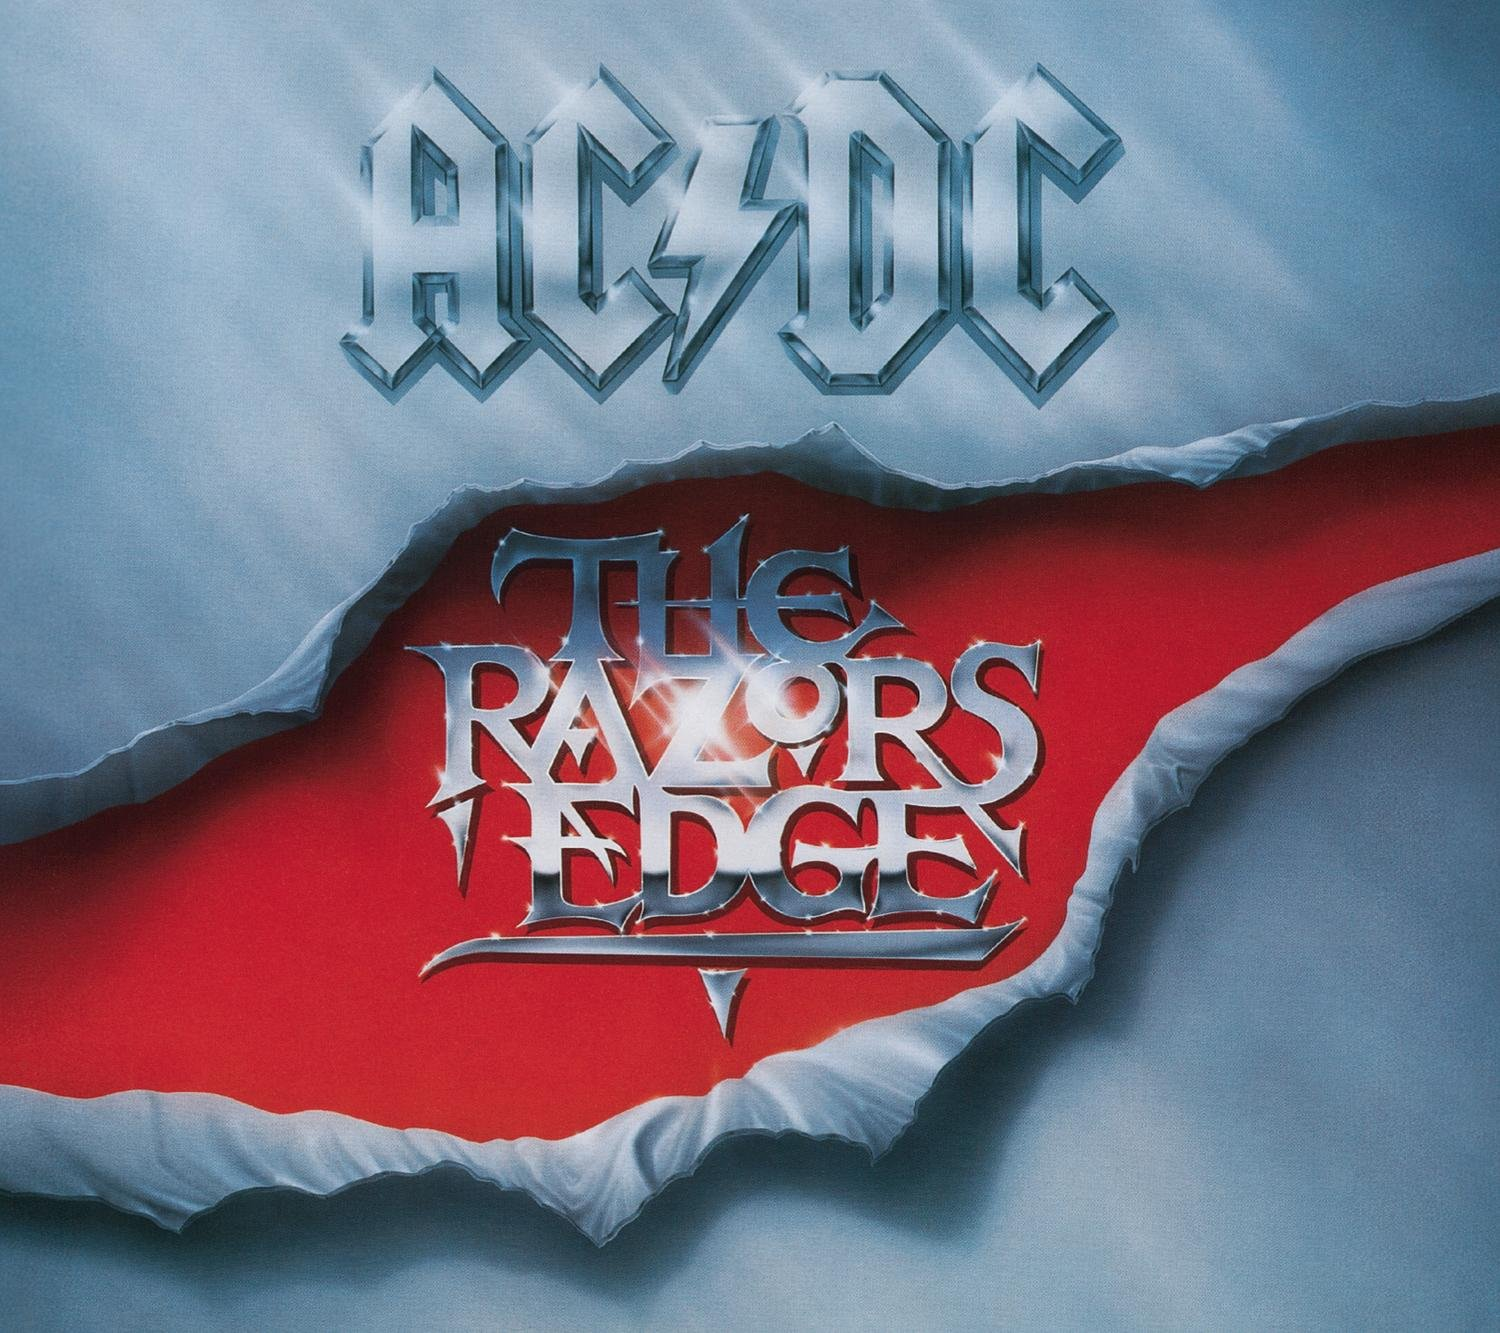 AC/DC - The Razor's Edge - Amazon.com Music